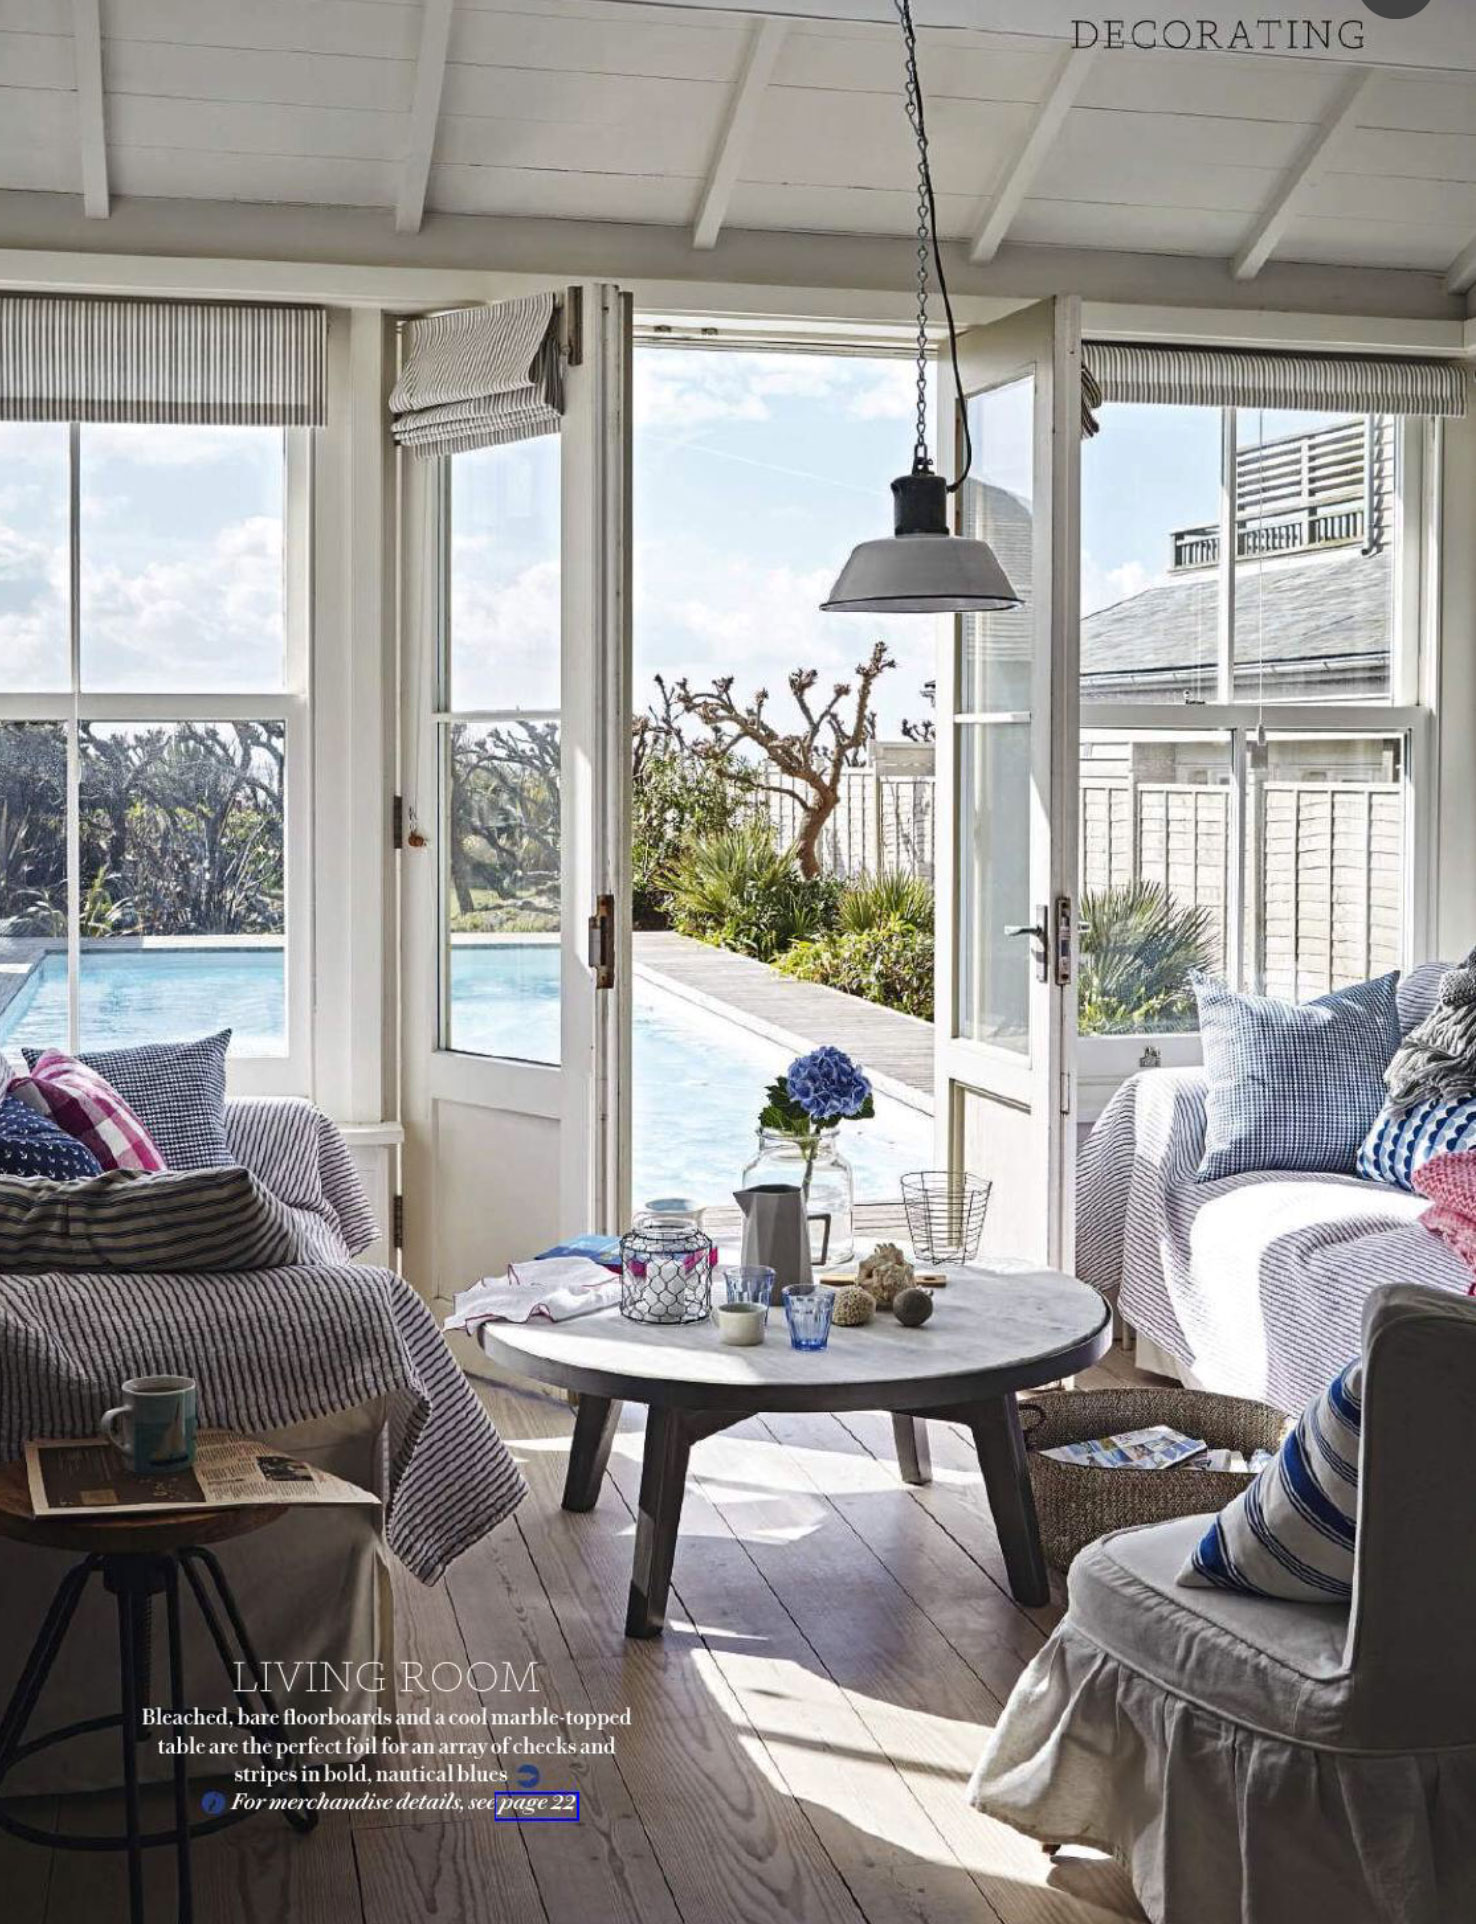 grey and yellow living room decorating ideas open shelving fresh coastal charm - interiors by color